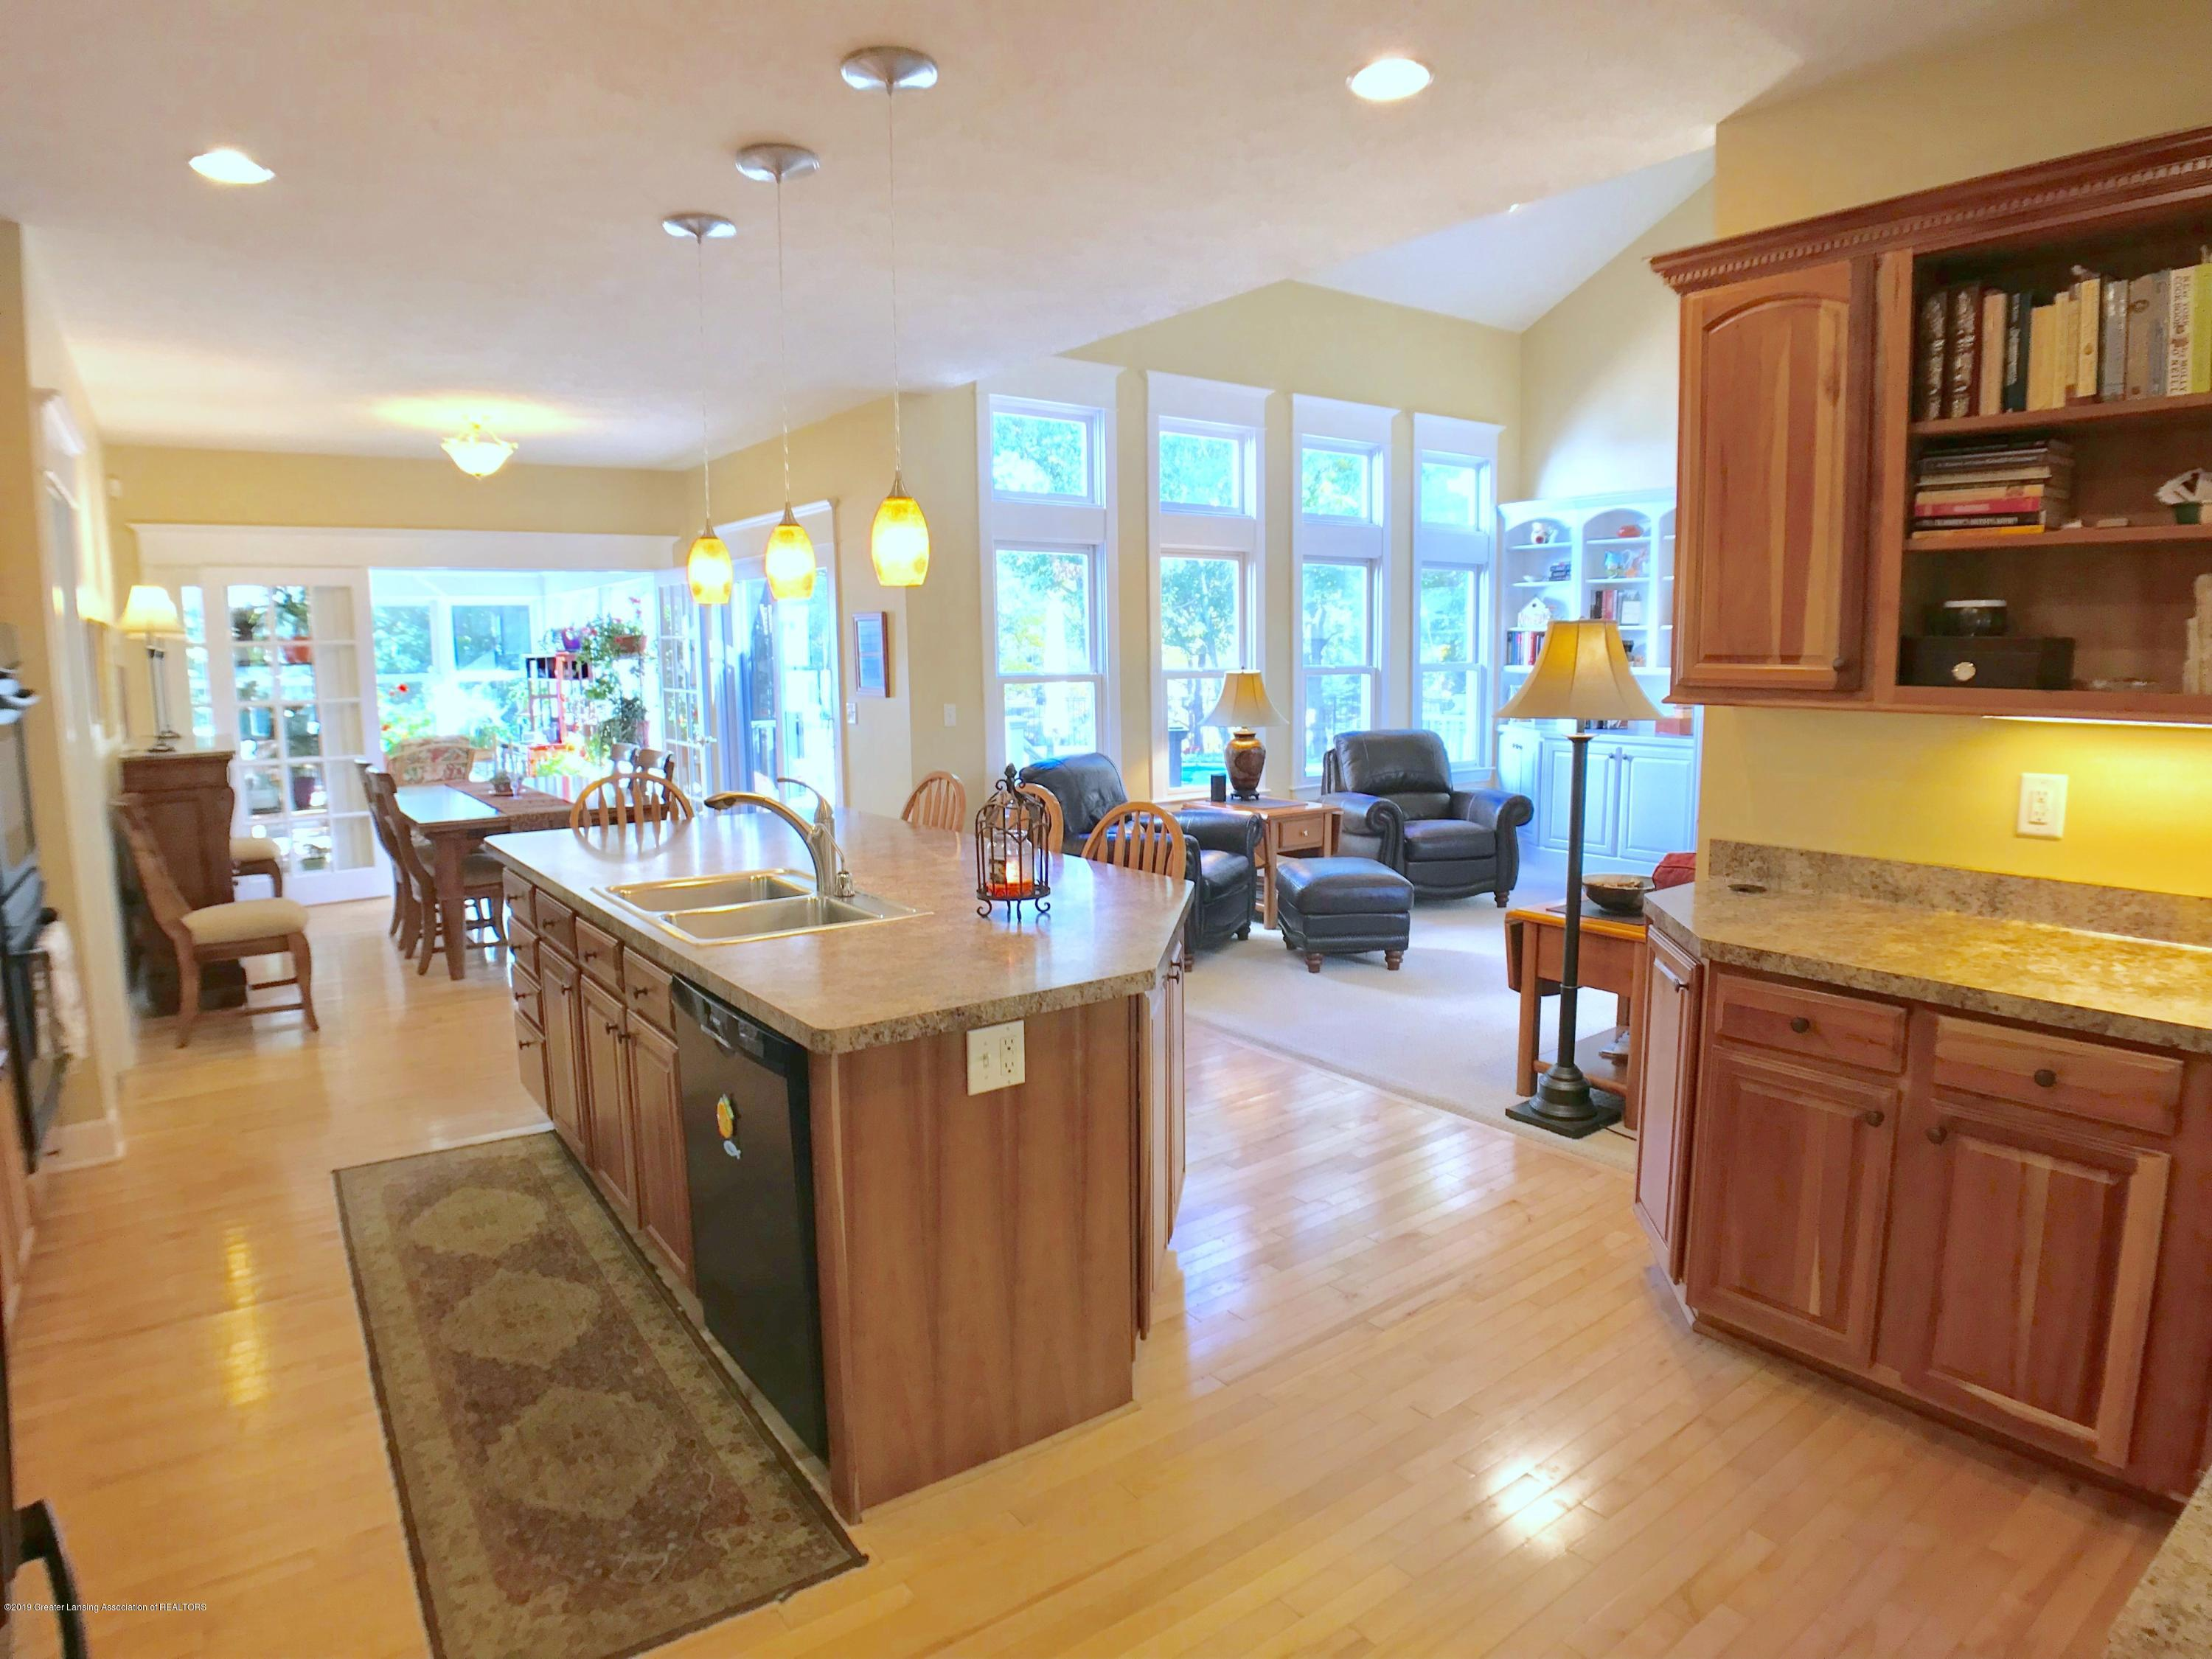 6430 Quail Ridge Ln - Kitchen - 15